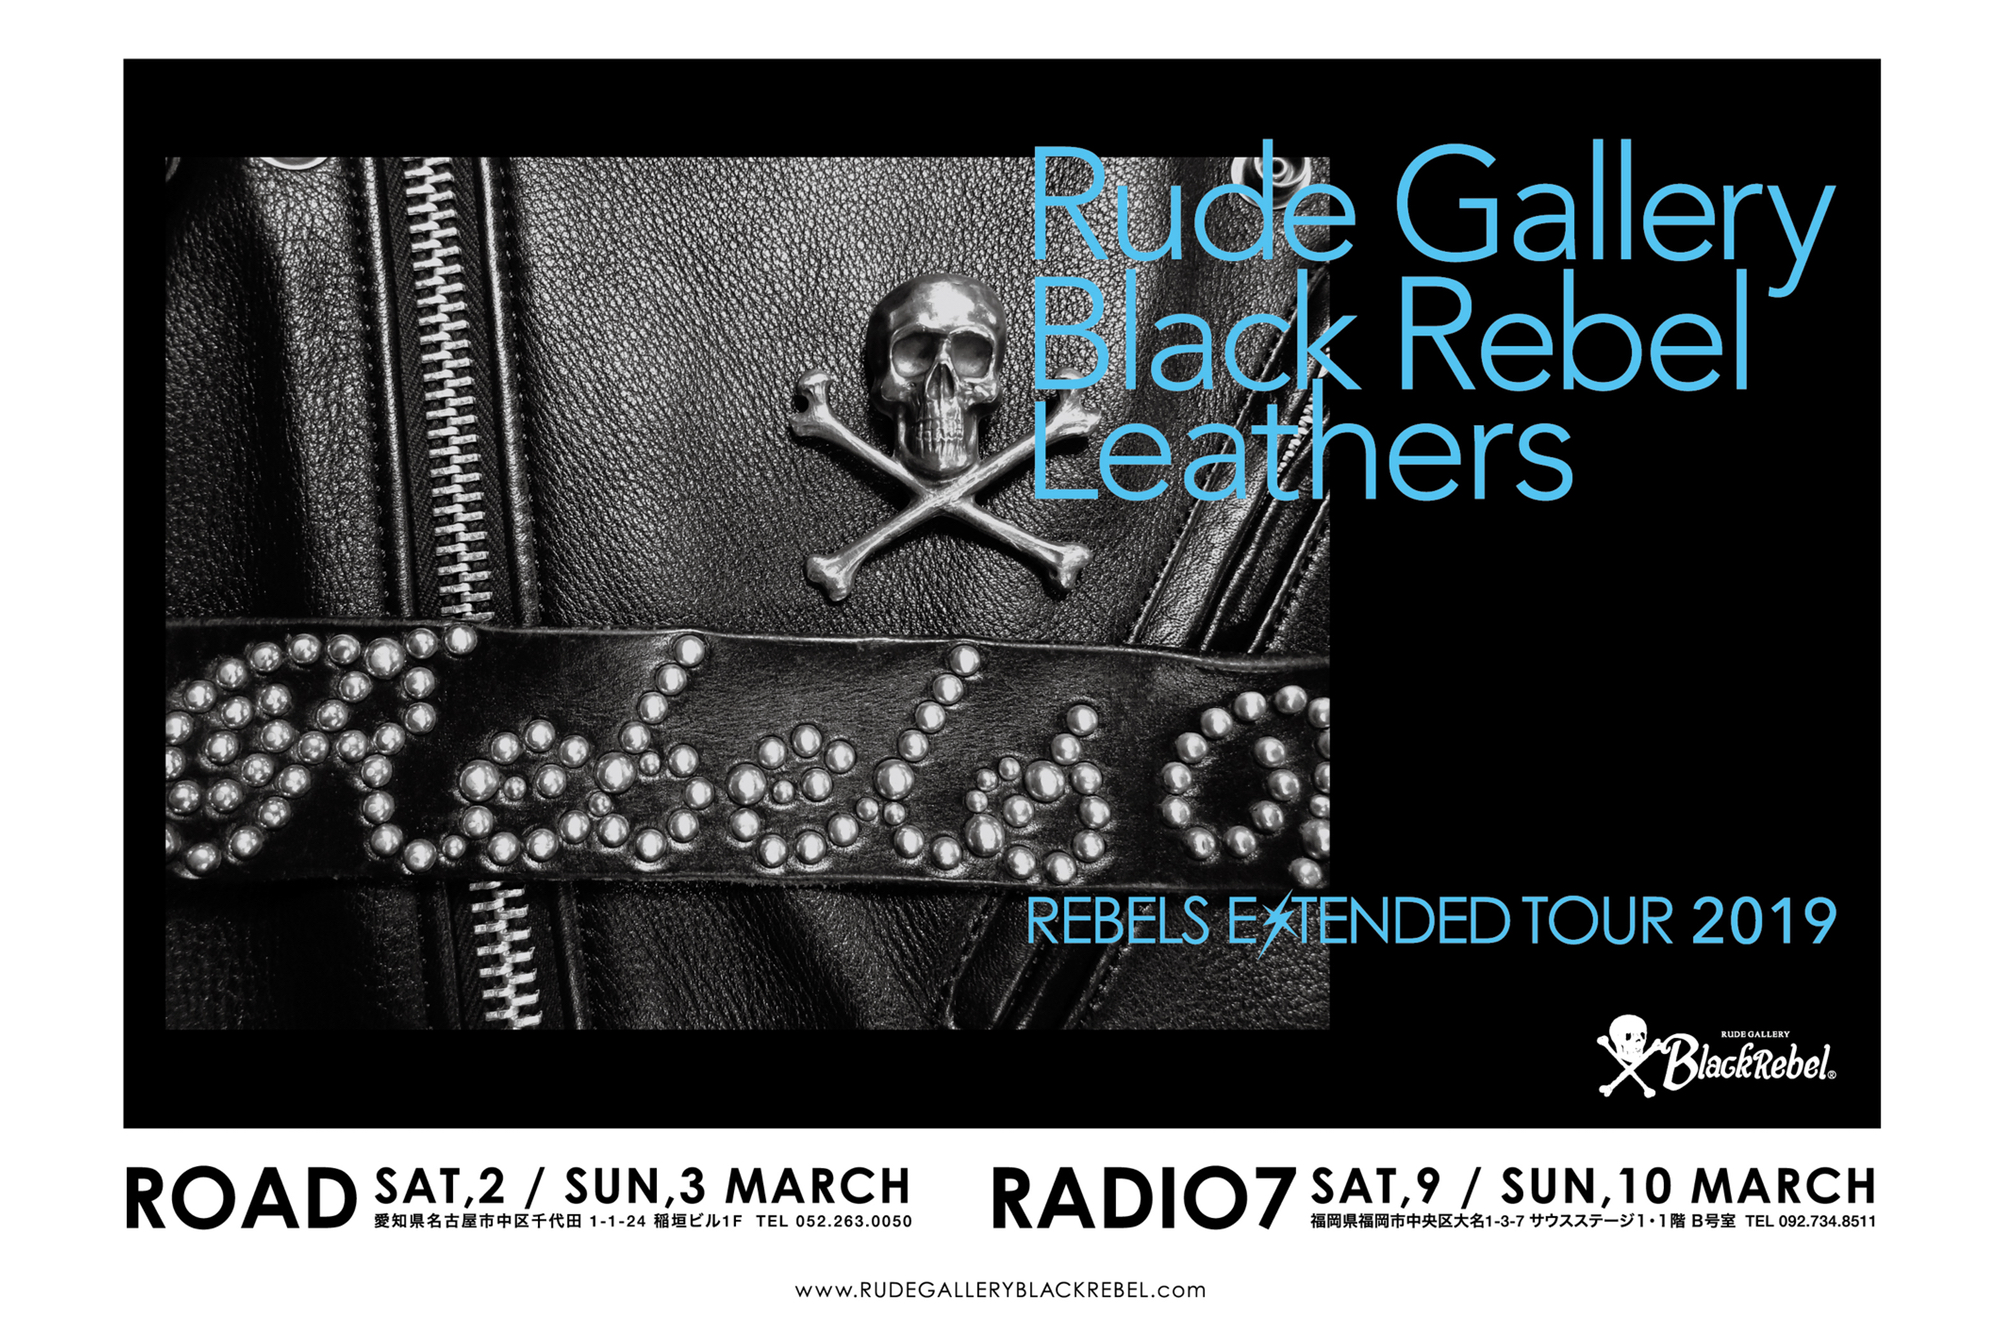 REBELS EXTENDED TOUR